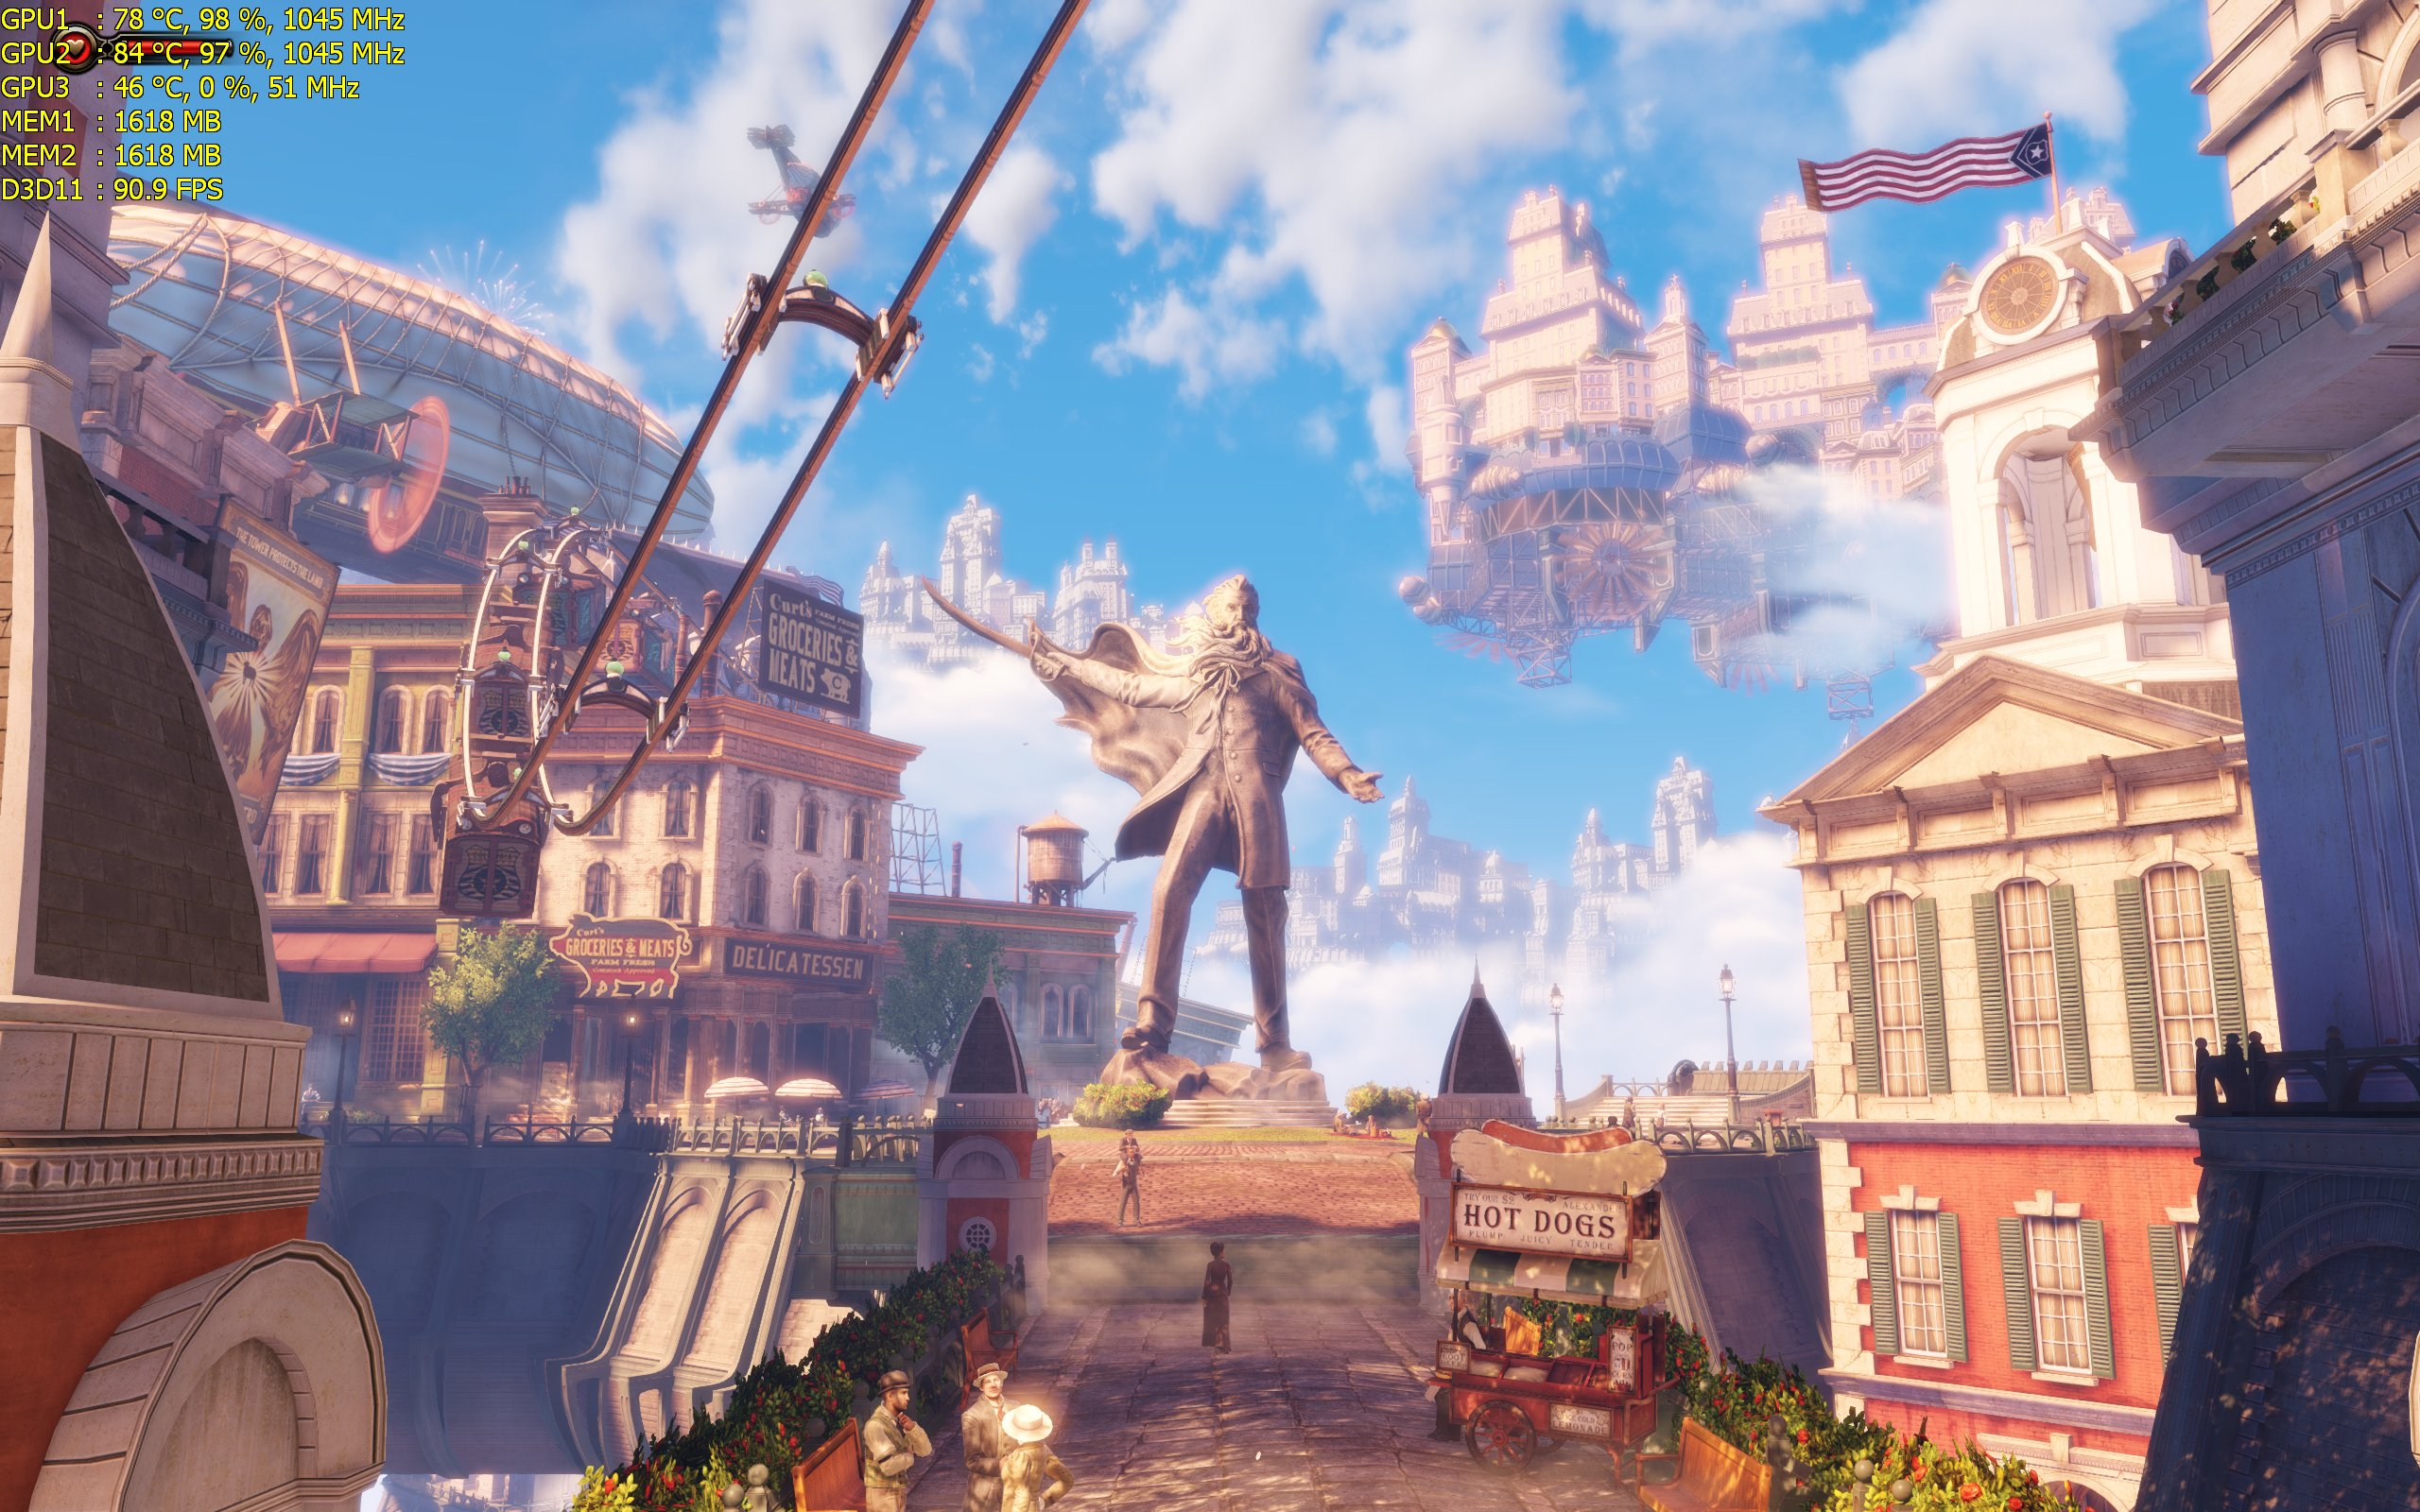 BioShockInfinite 2013_03_25_22_52_53_600